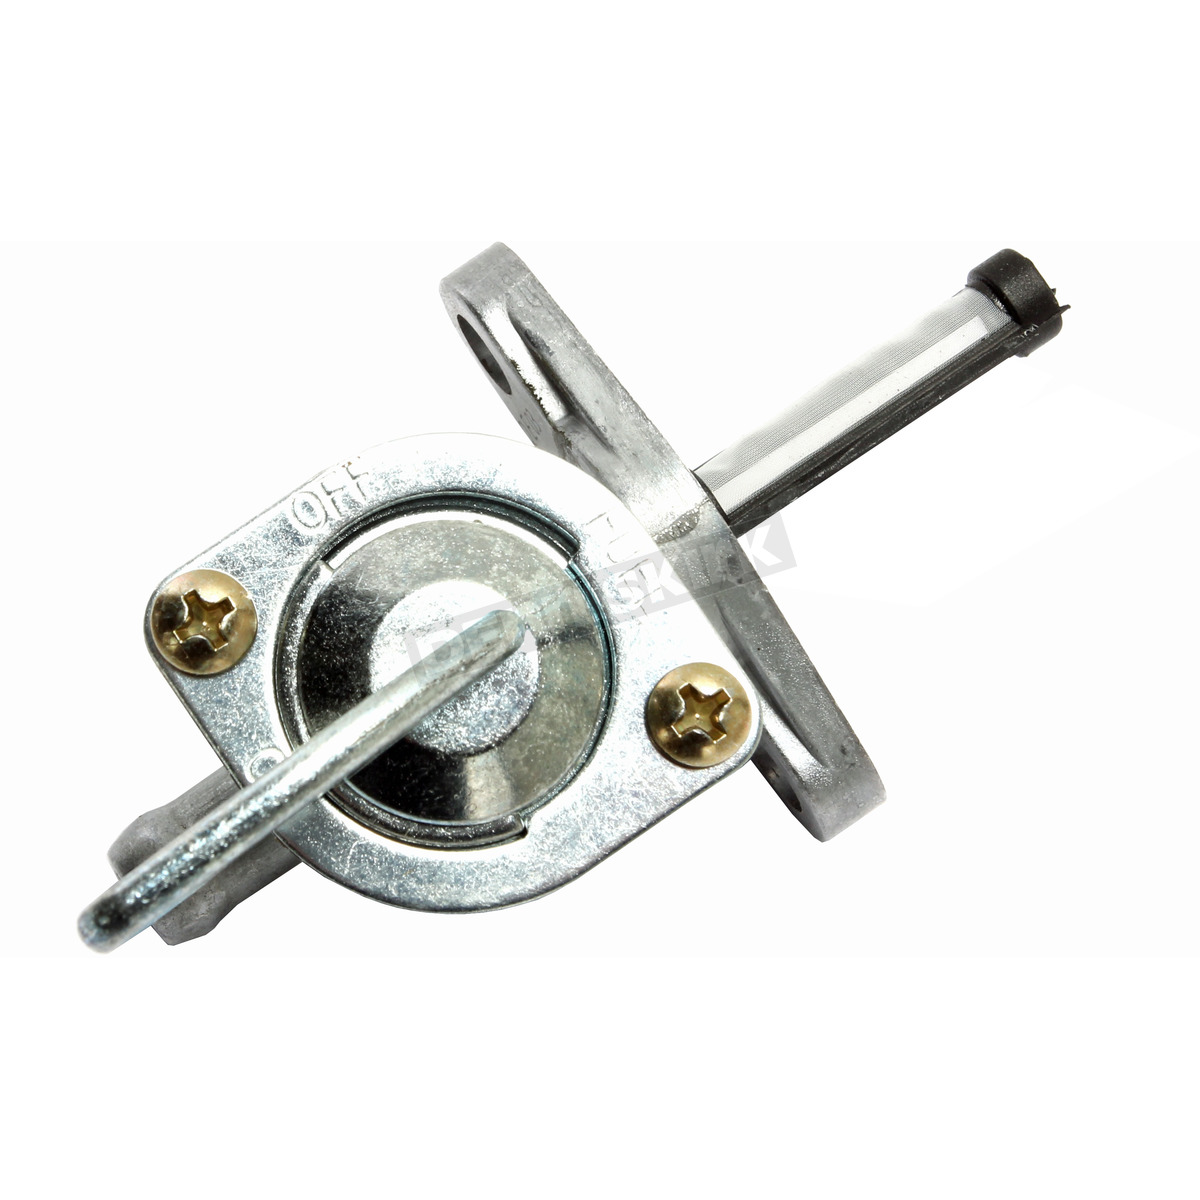 Fuel Star Fuel Valve Kit